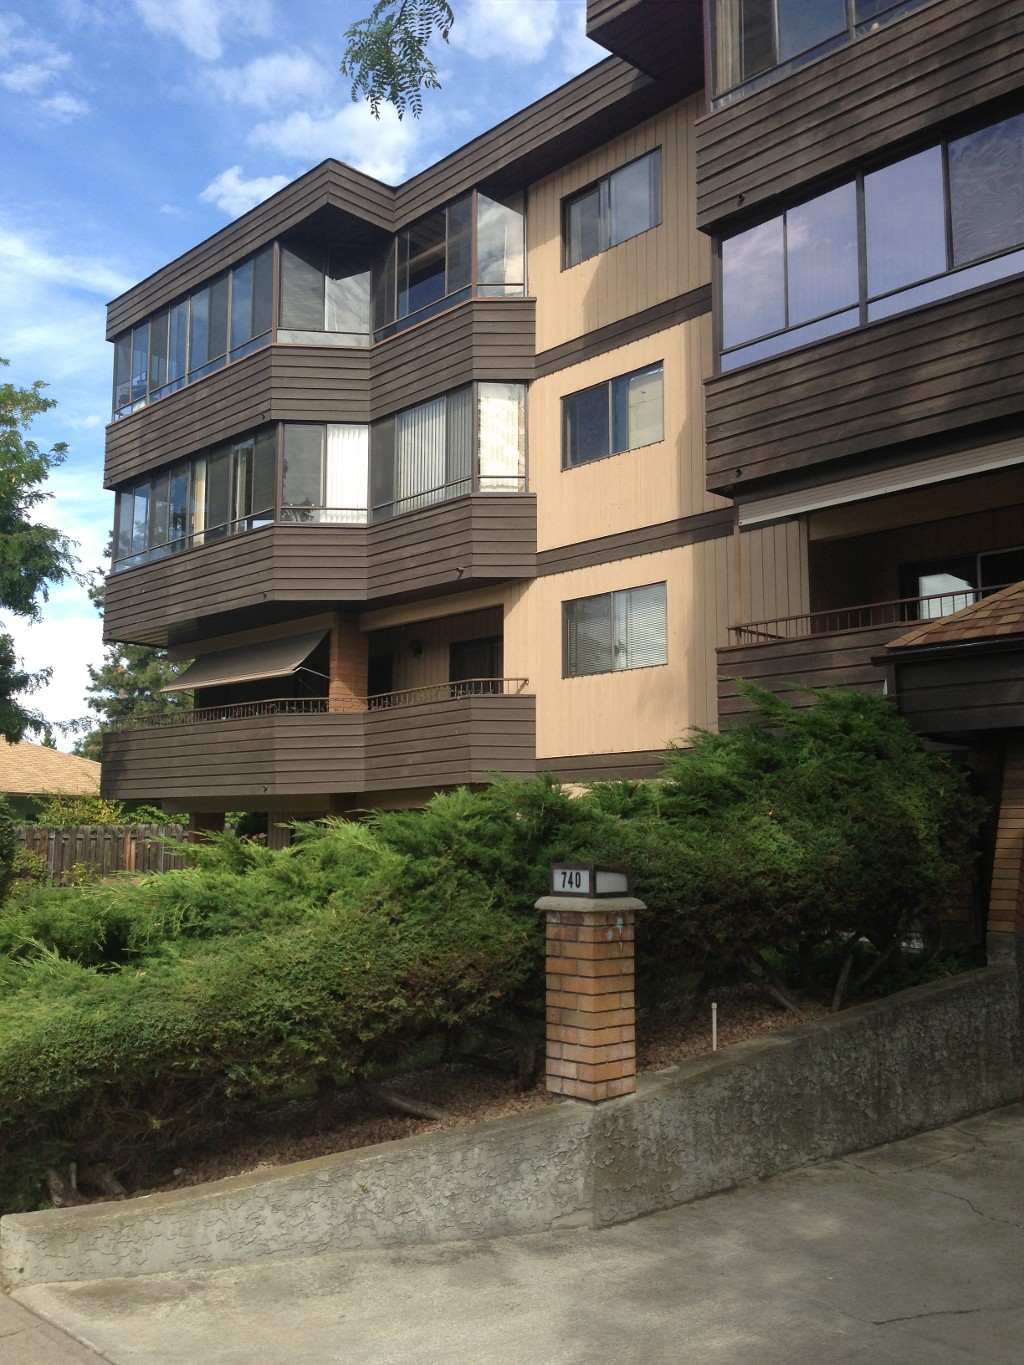 Main Photo: #203 - 740 Winnipeg Street in Penticton: Main North Multifamily for sale : MLS(r) # 145233